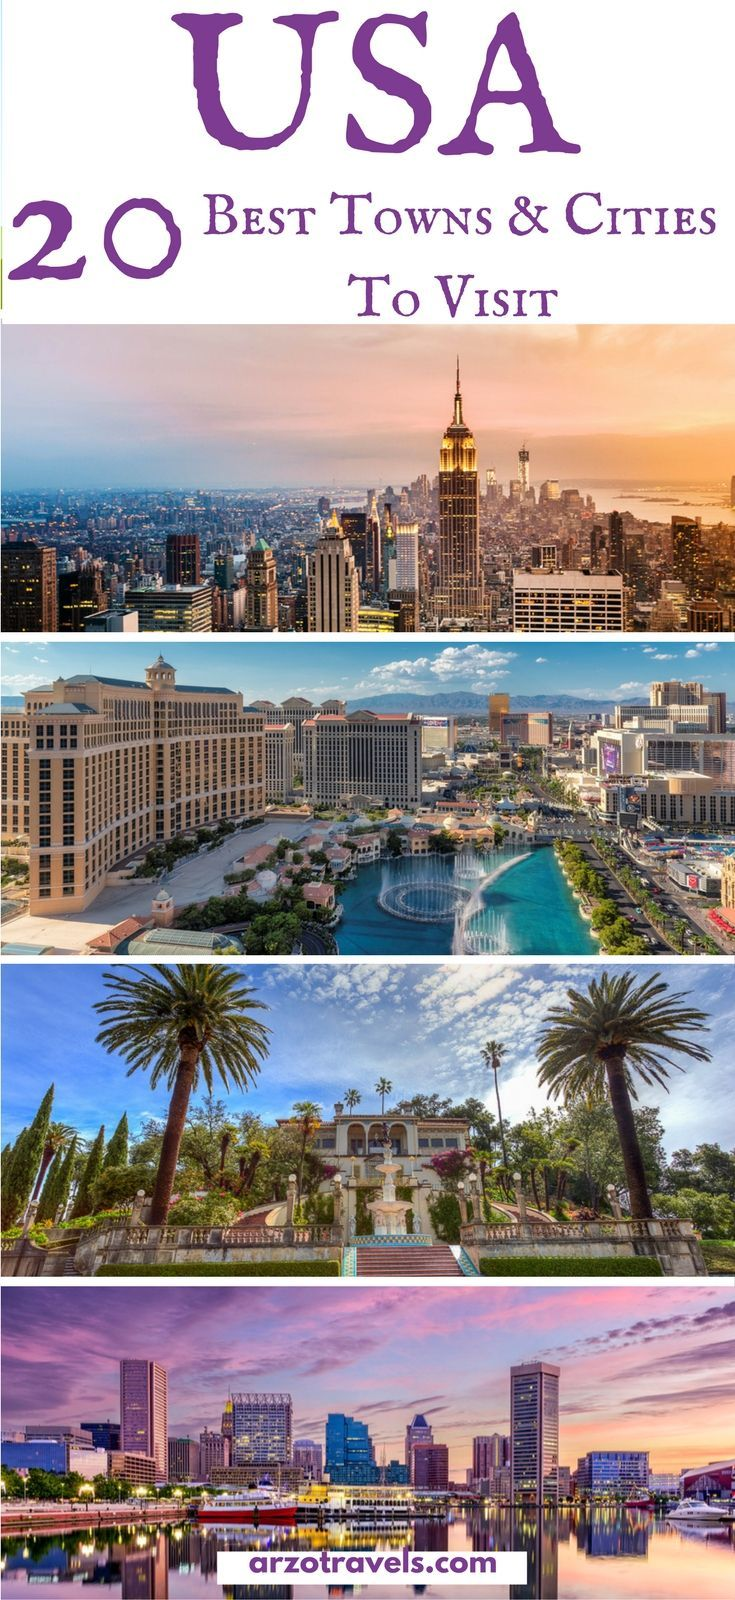 Find out which cities and towns in the US are the best to visit and which places should be on your USA itinerary. #usa